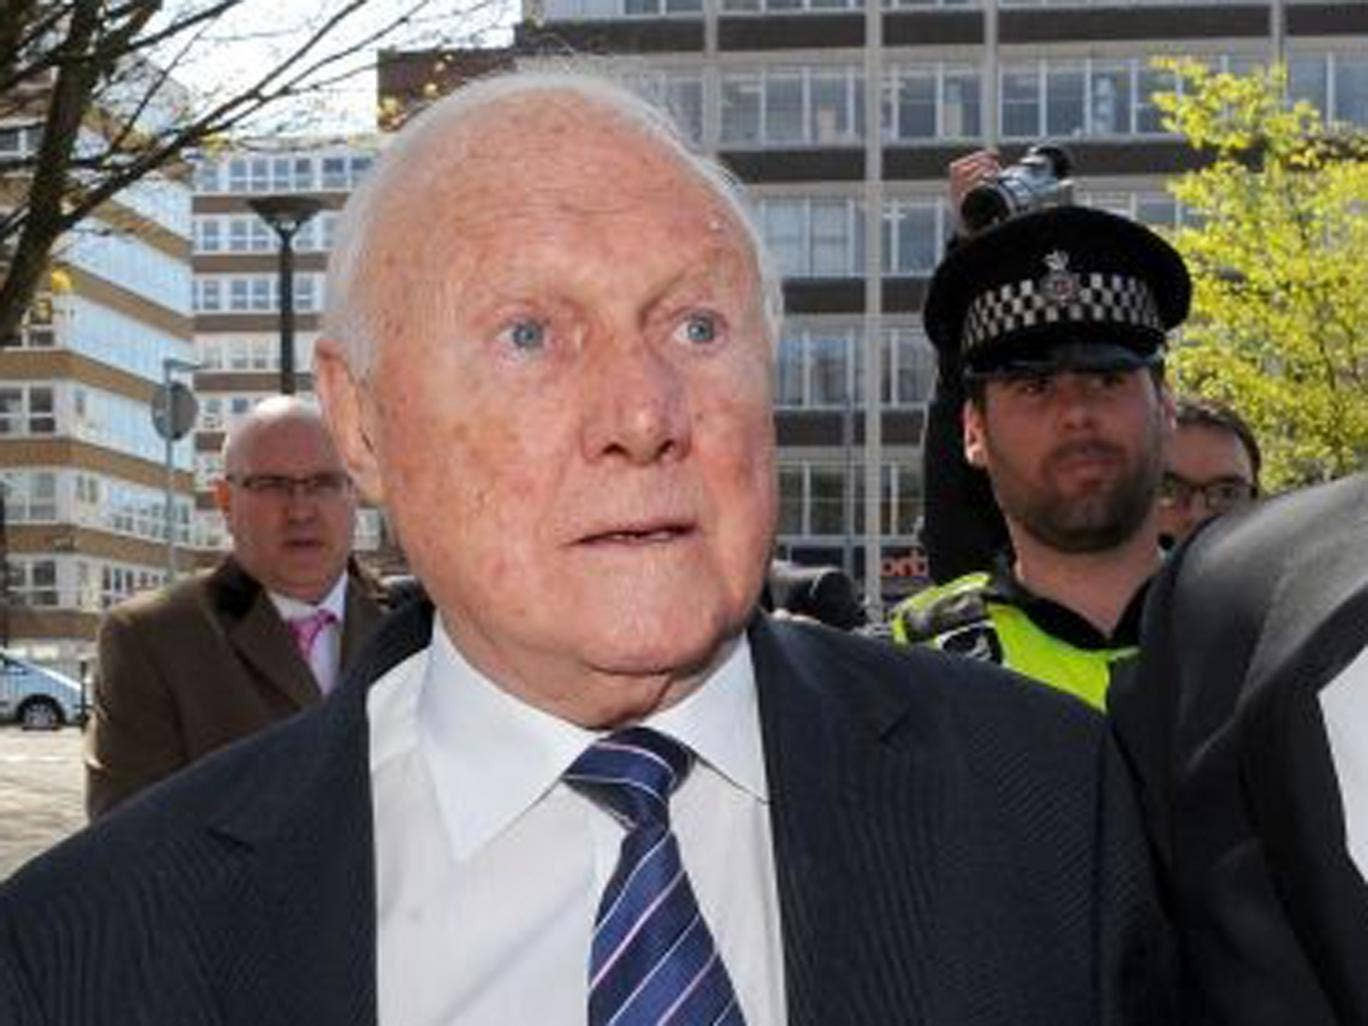 Hall arriving at court this morning